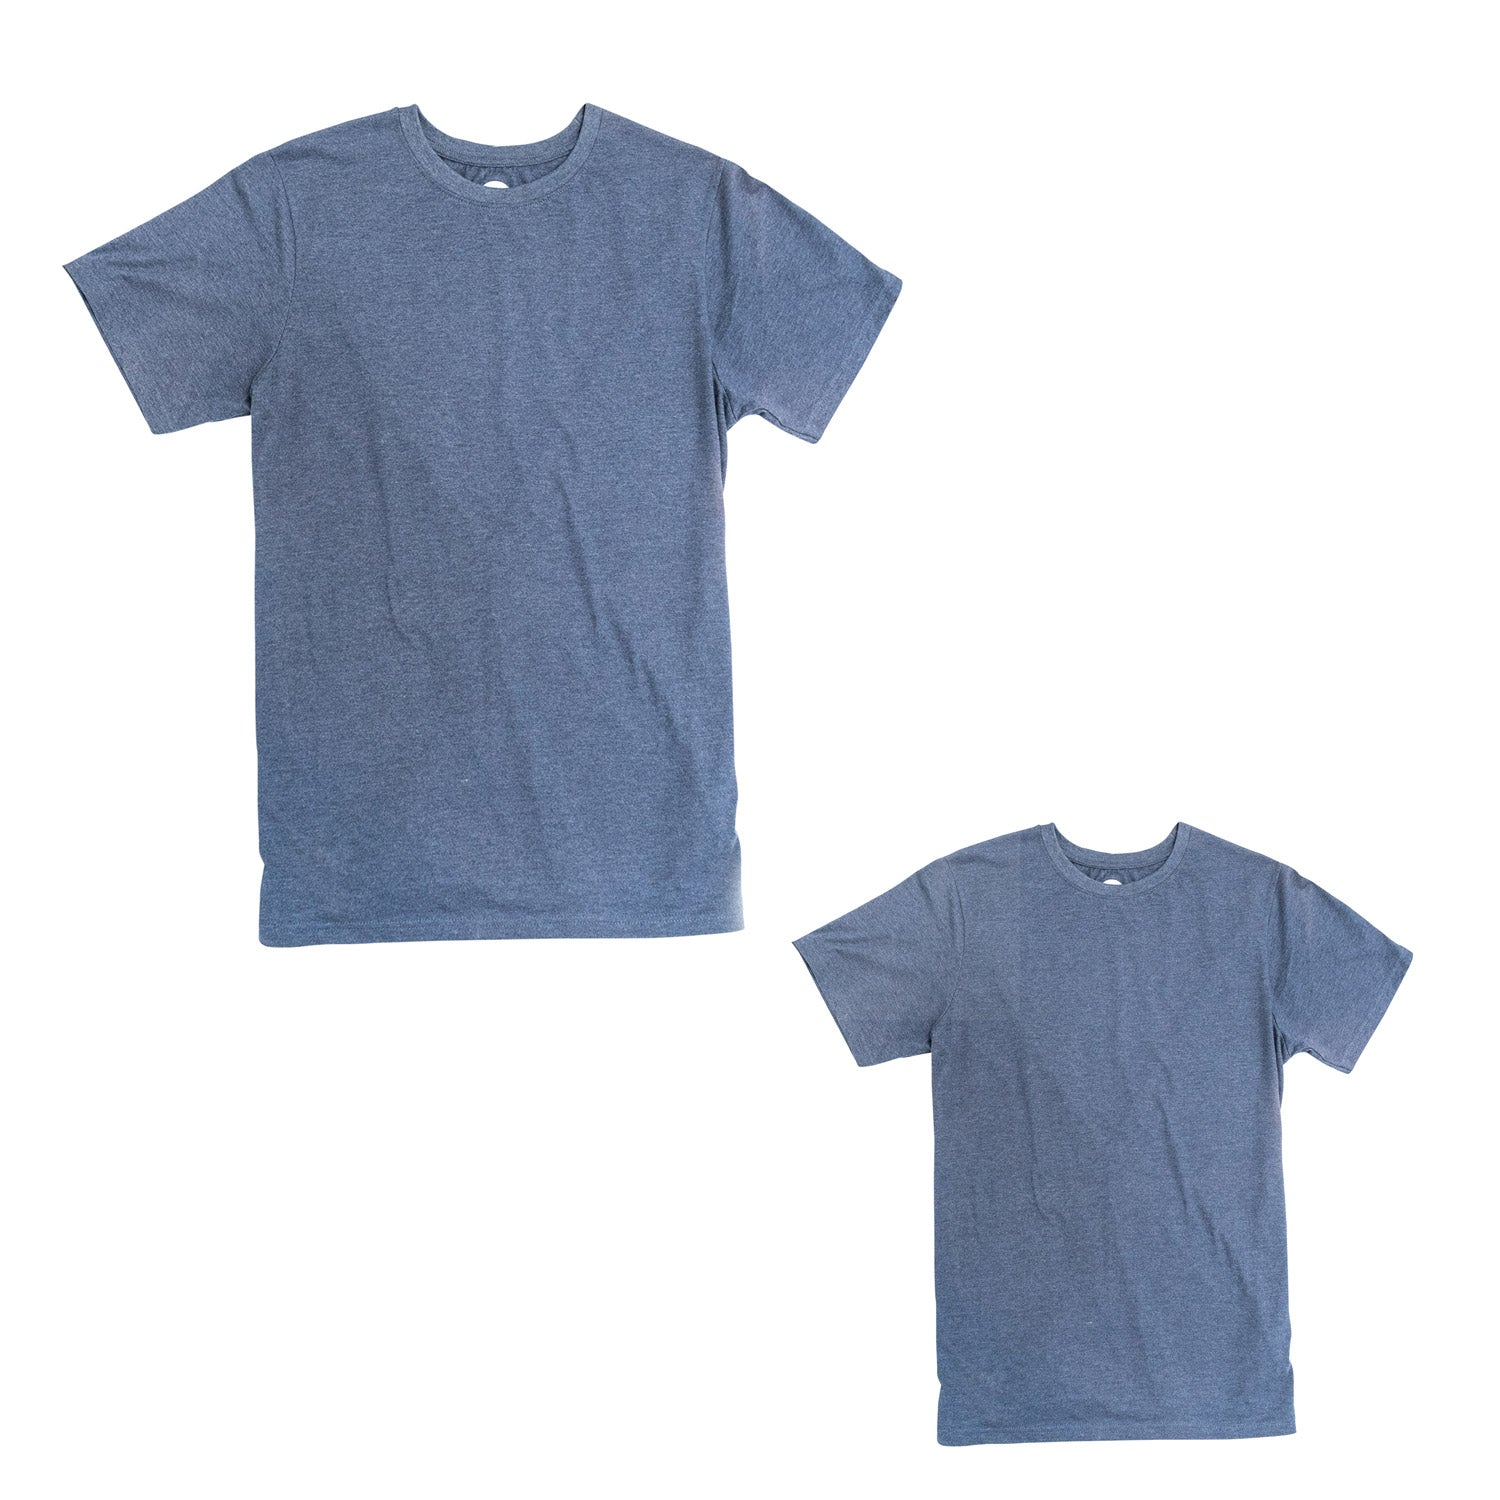 Heather Blue Men's Upcycled Tee 2 Pack